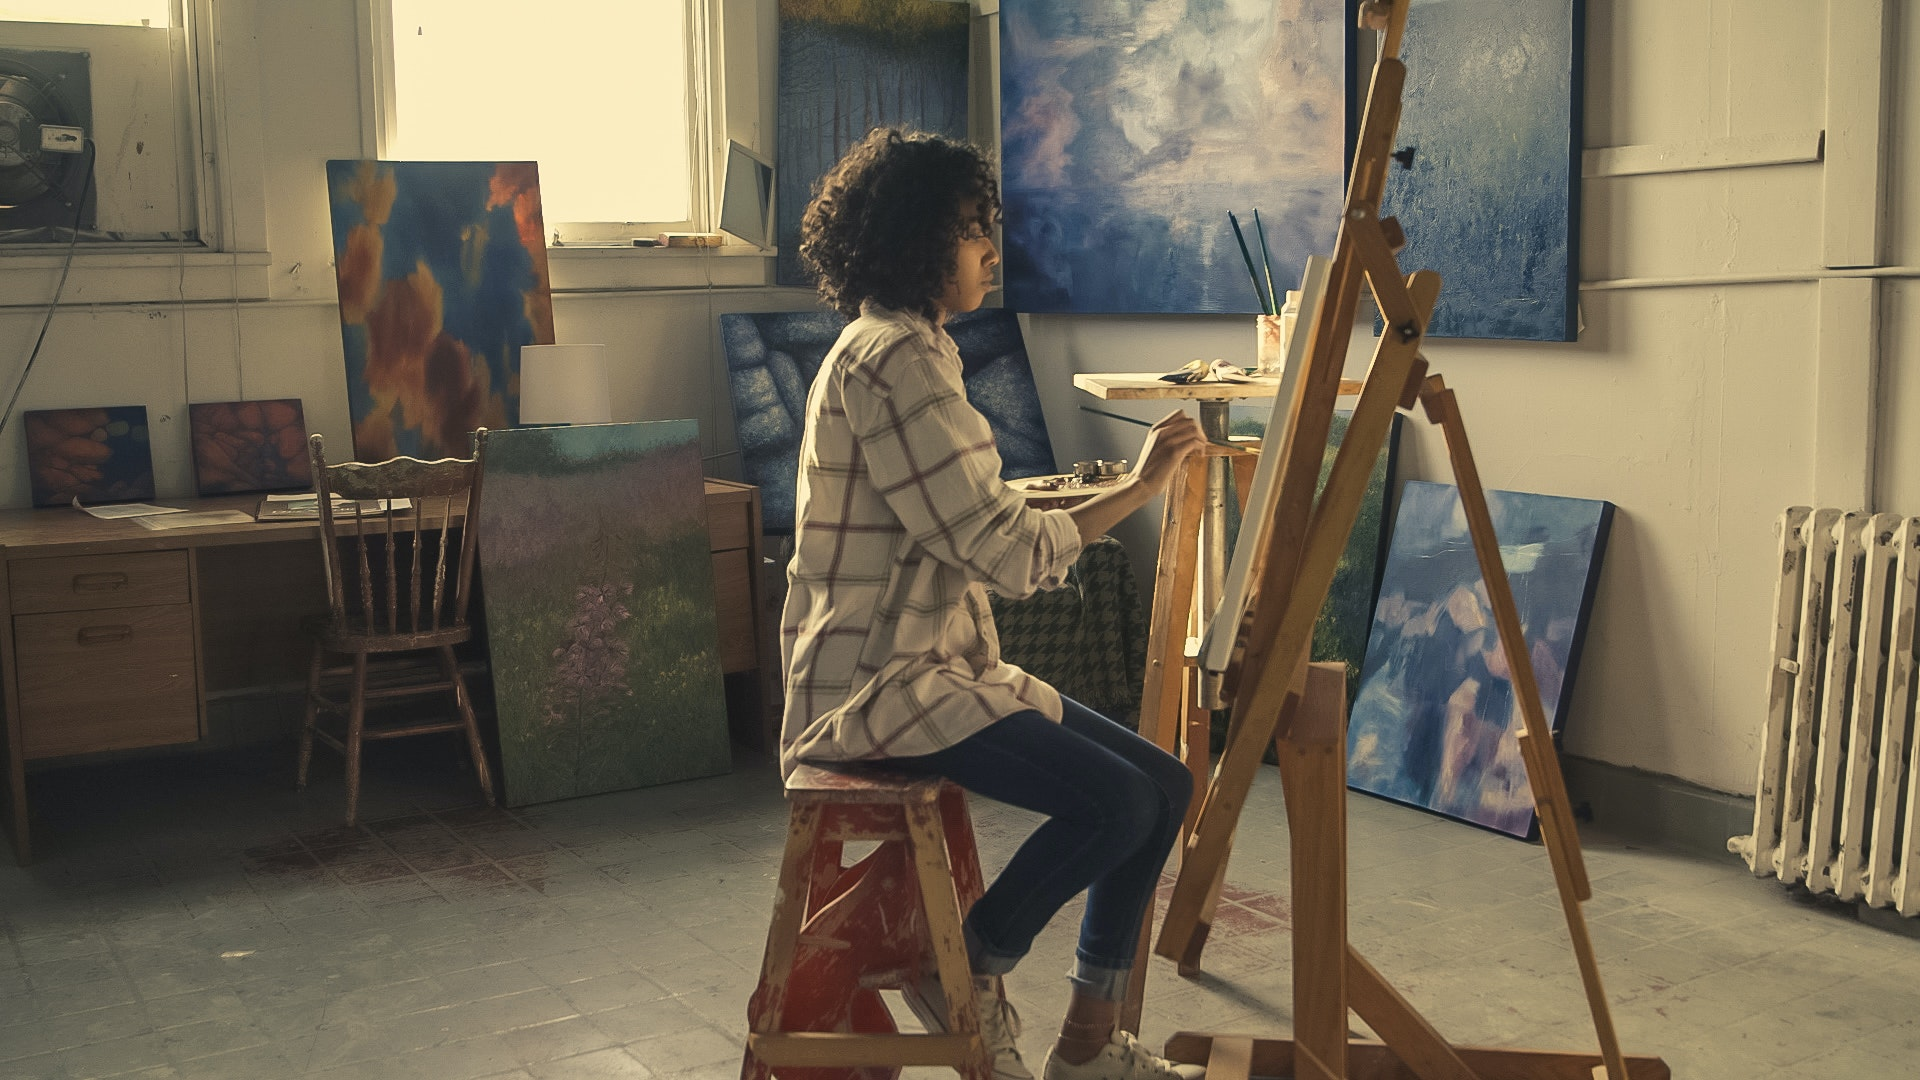 An artist painting on a canvas in her studio